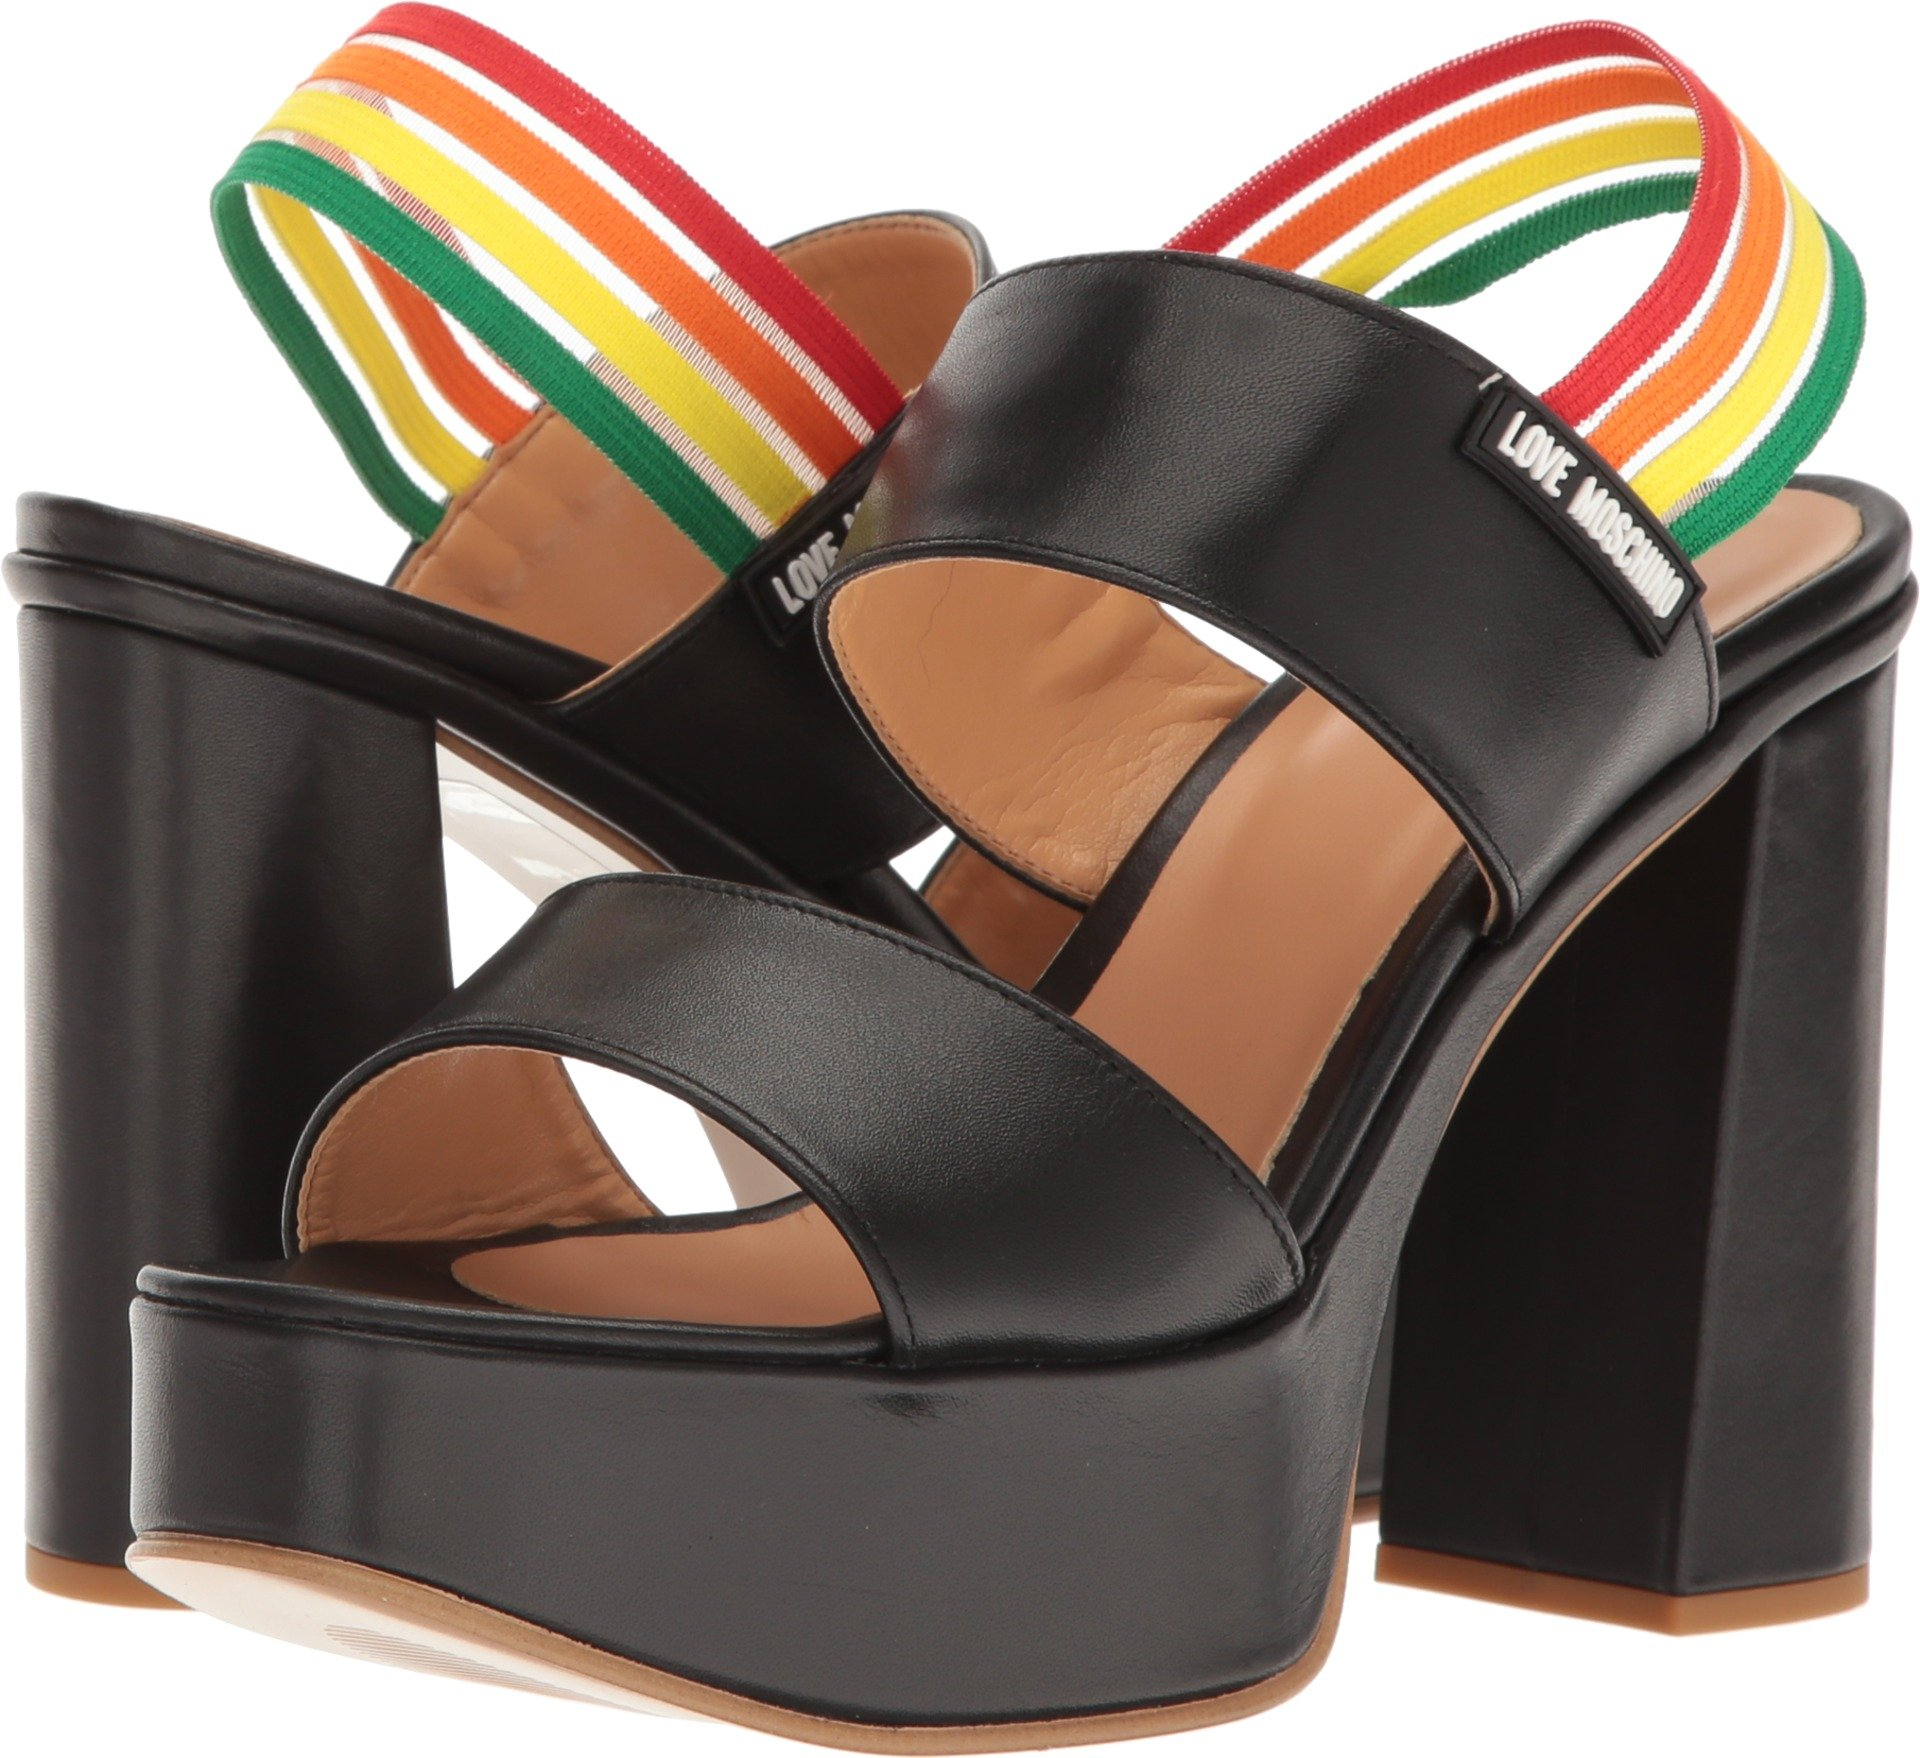 Love Moschino Women's Rainbow Strap Chunky Heels Black Shoe